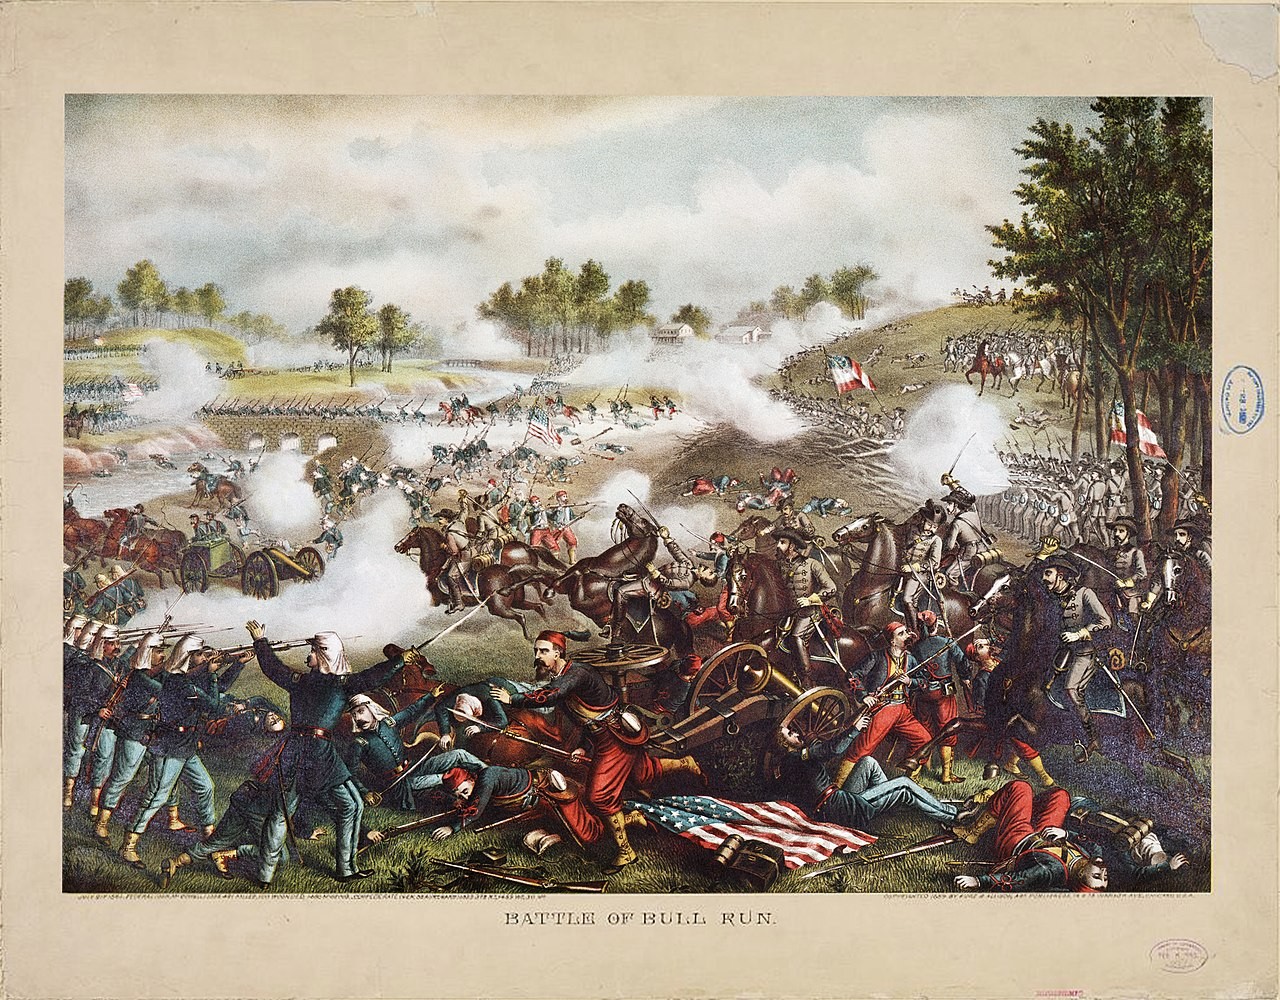 1280px-First_Battle_of_Bull_Run_Kurz_&_Allison.jpg